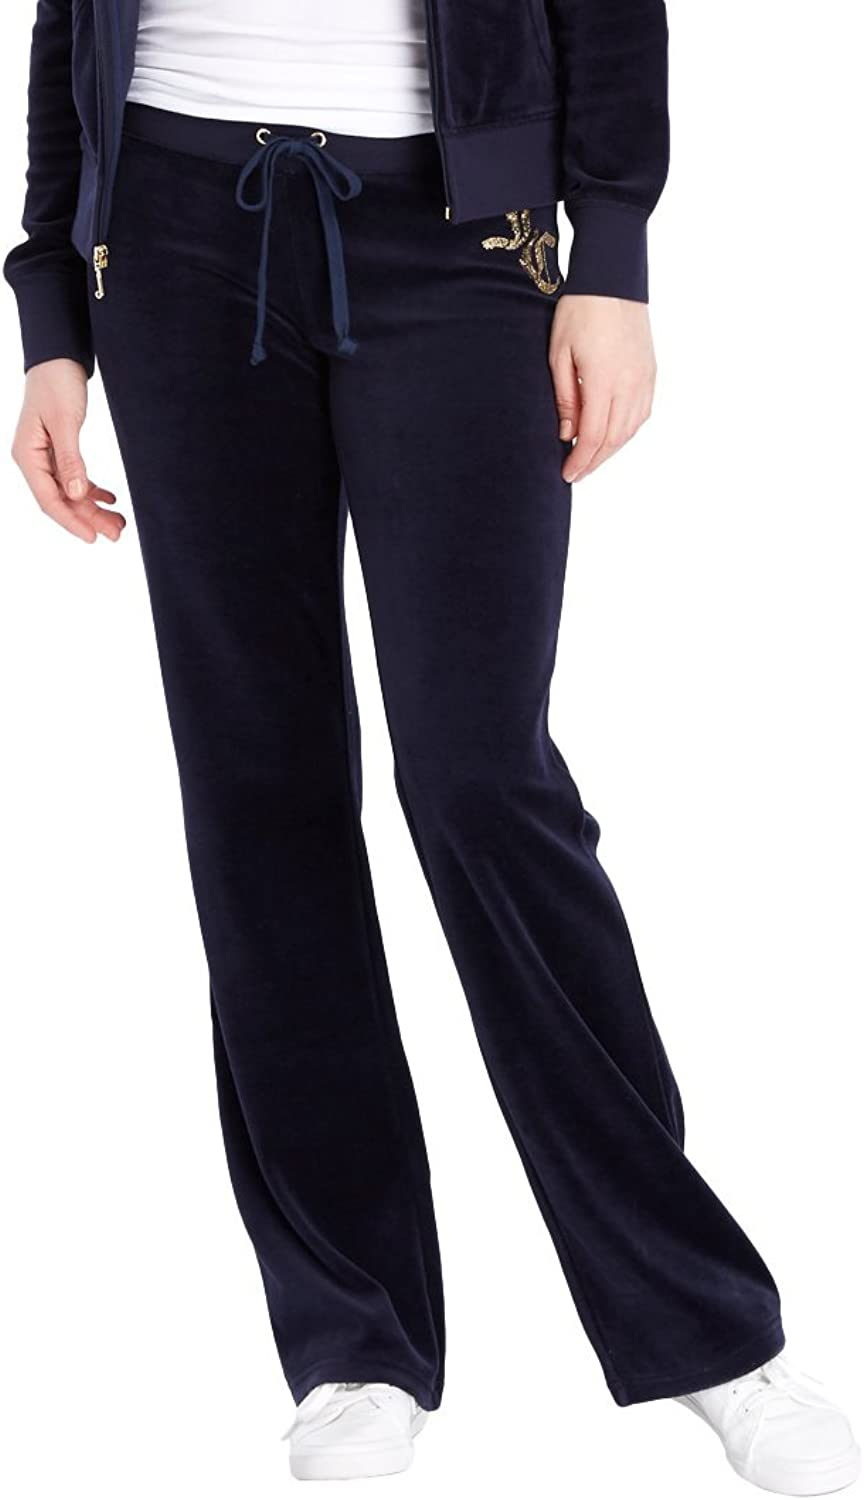 Juicy Couture Black Label Women's Paisley Flourish Del Rey Pant